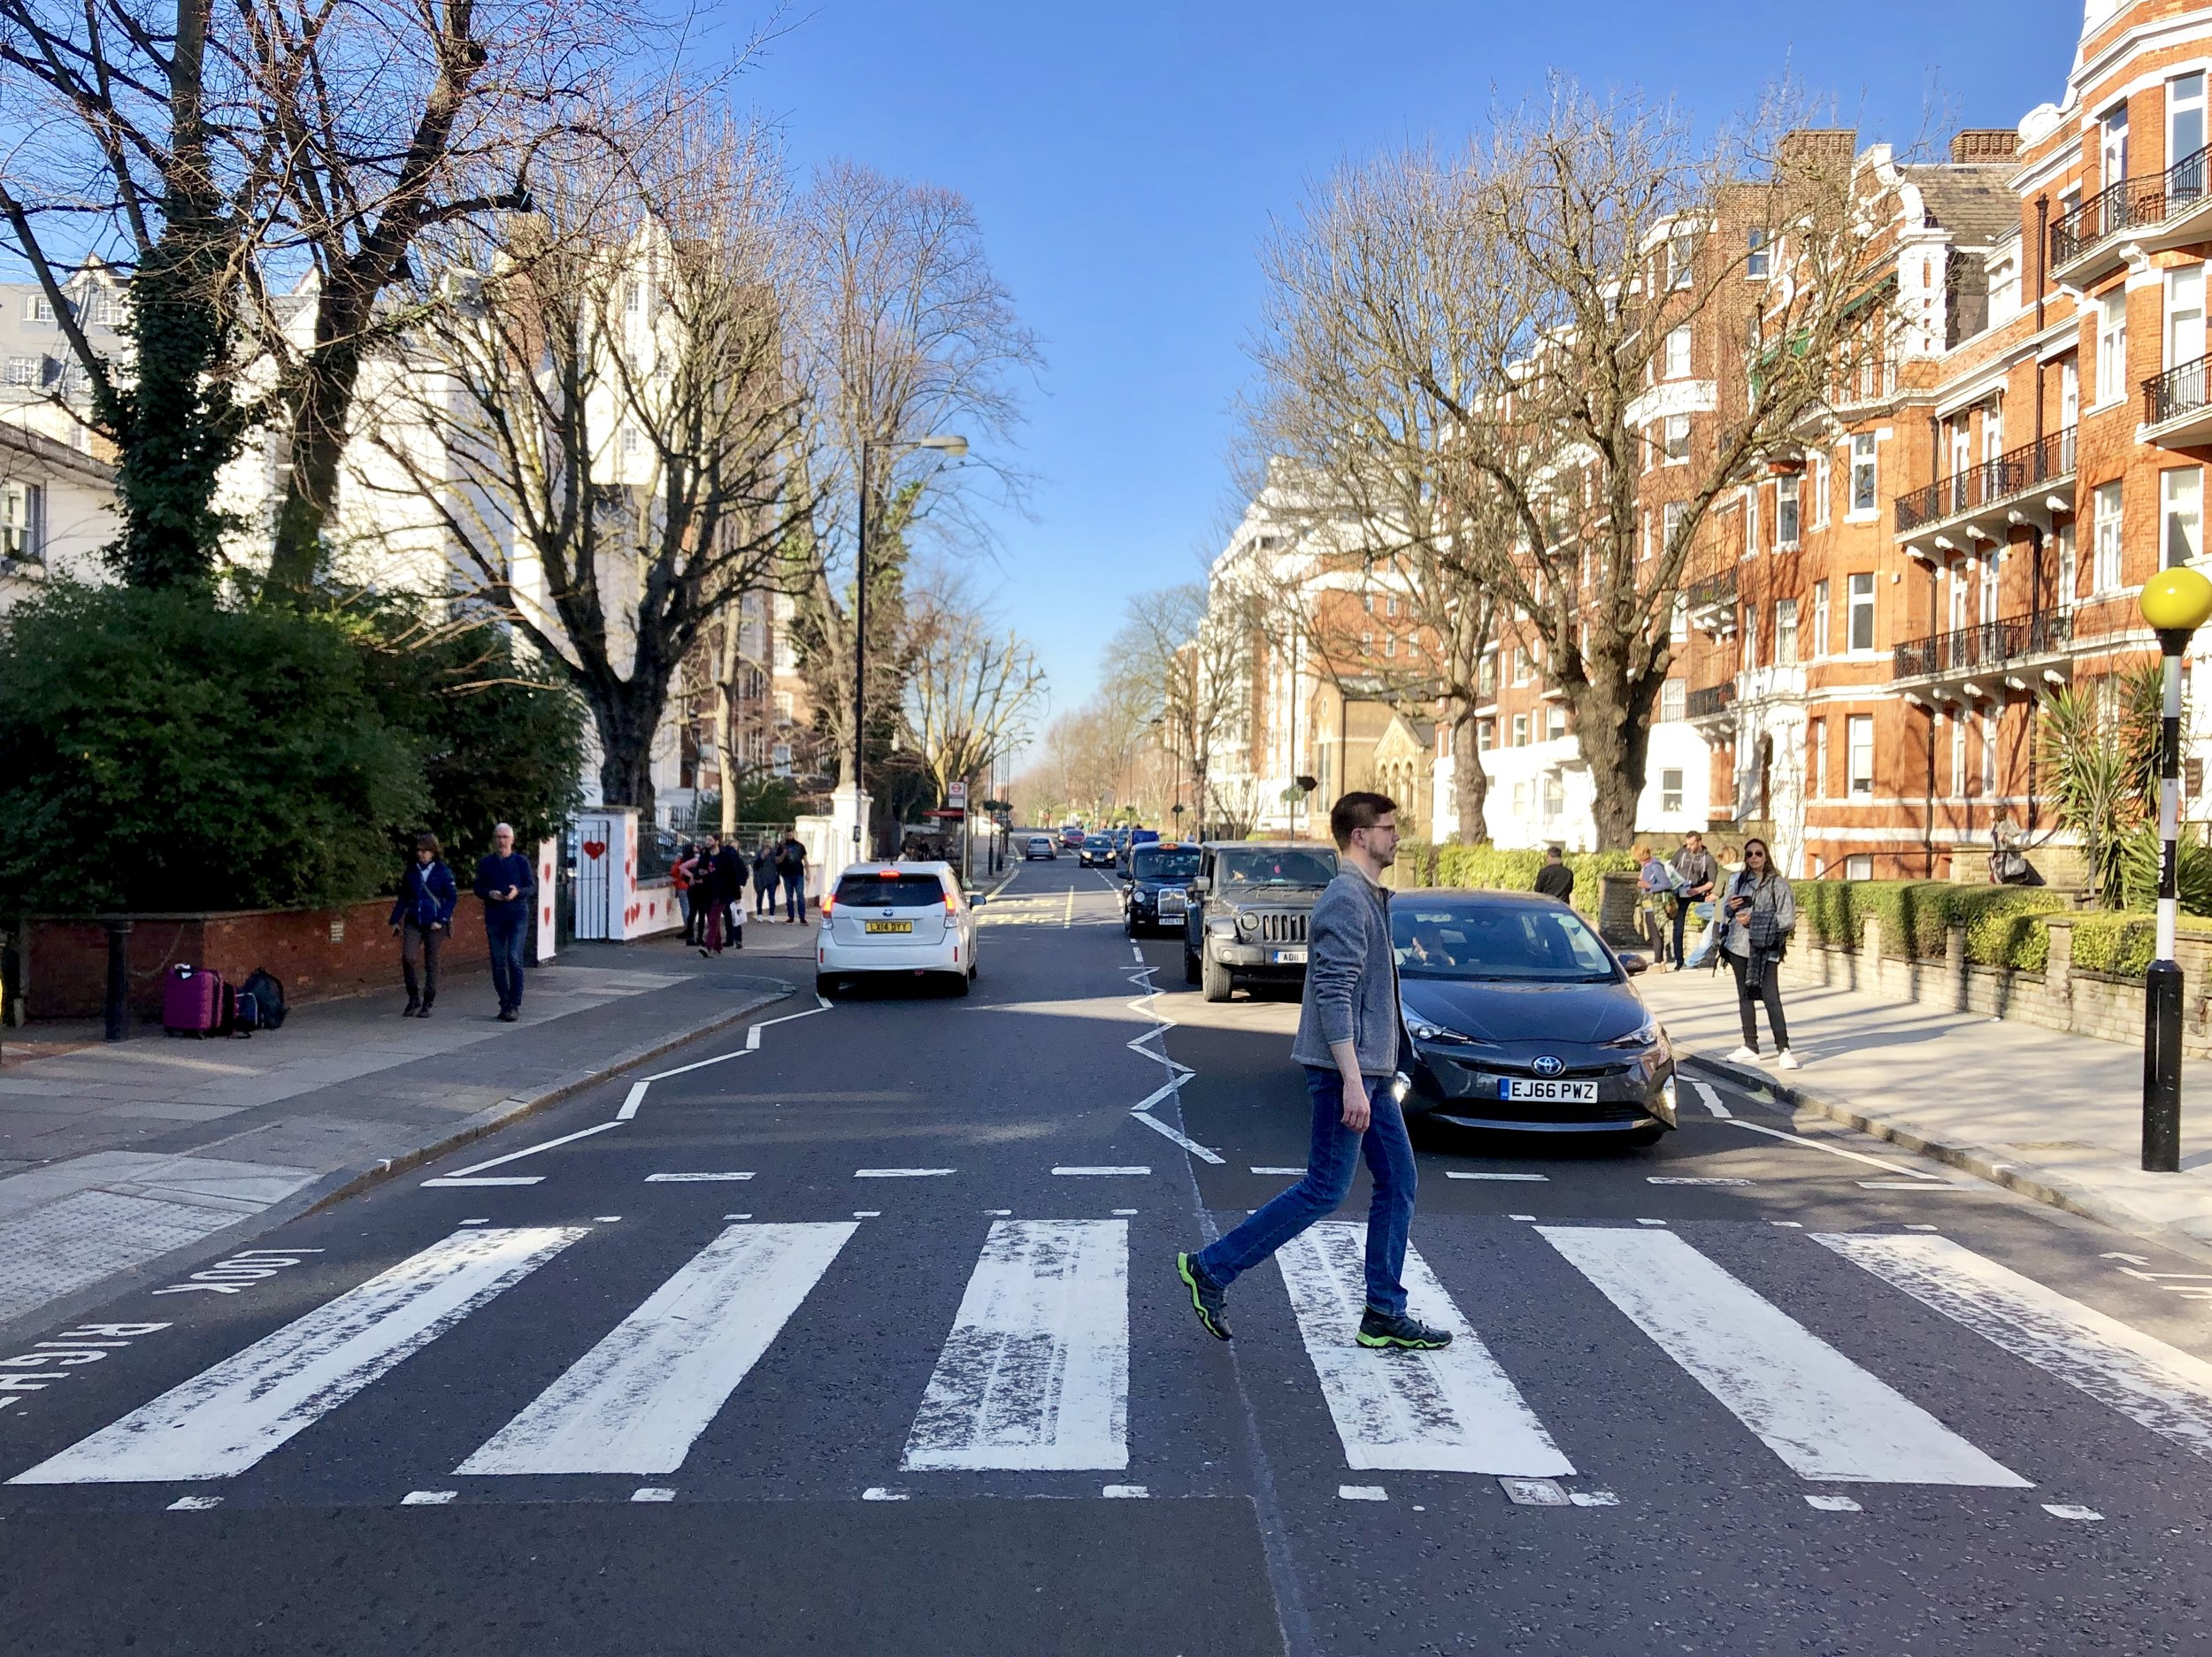 The Beatles Abbey Road Crossing (London)